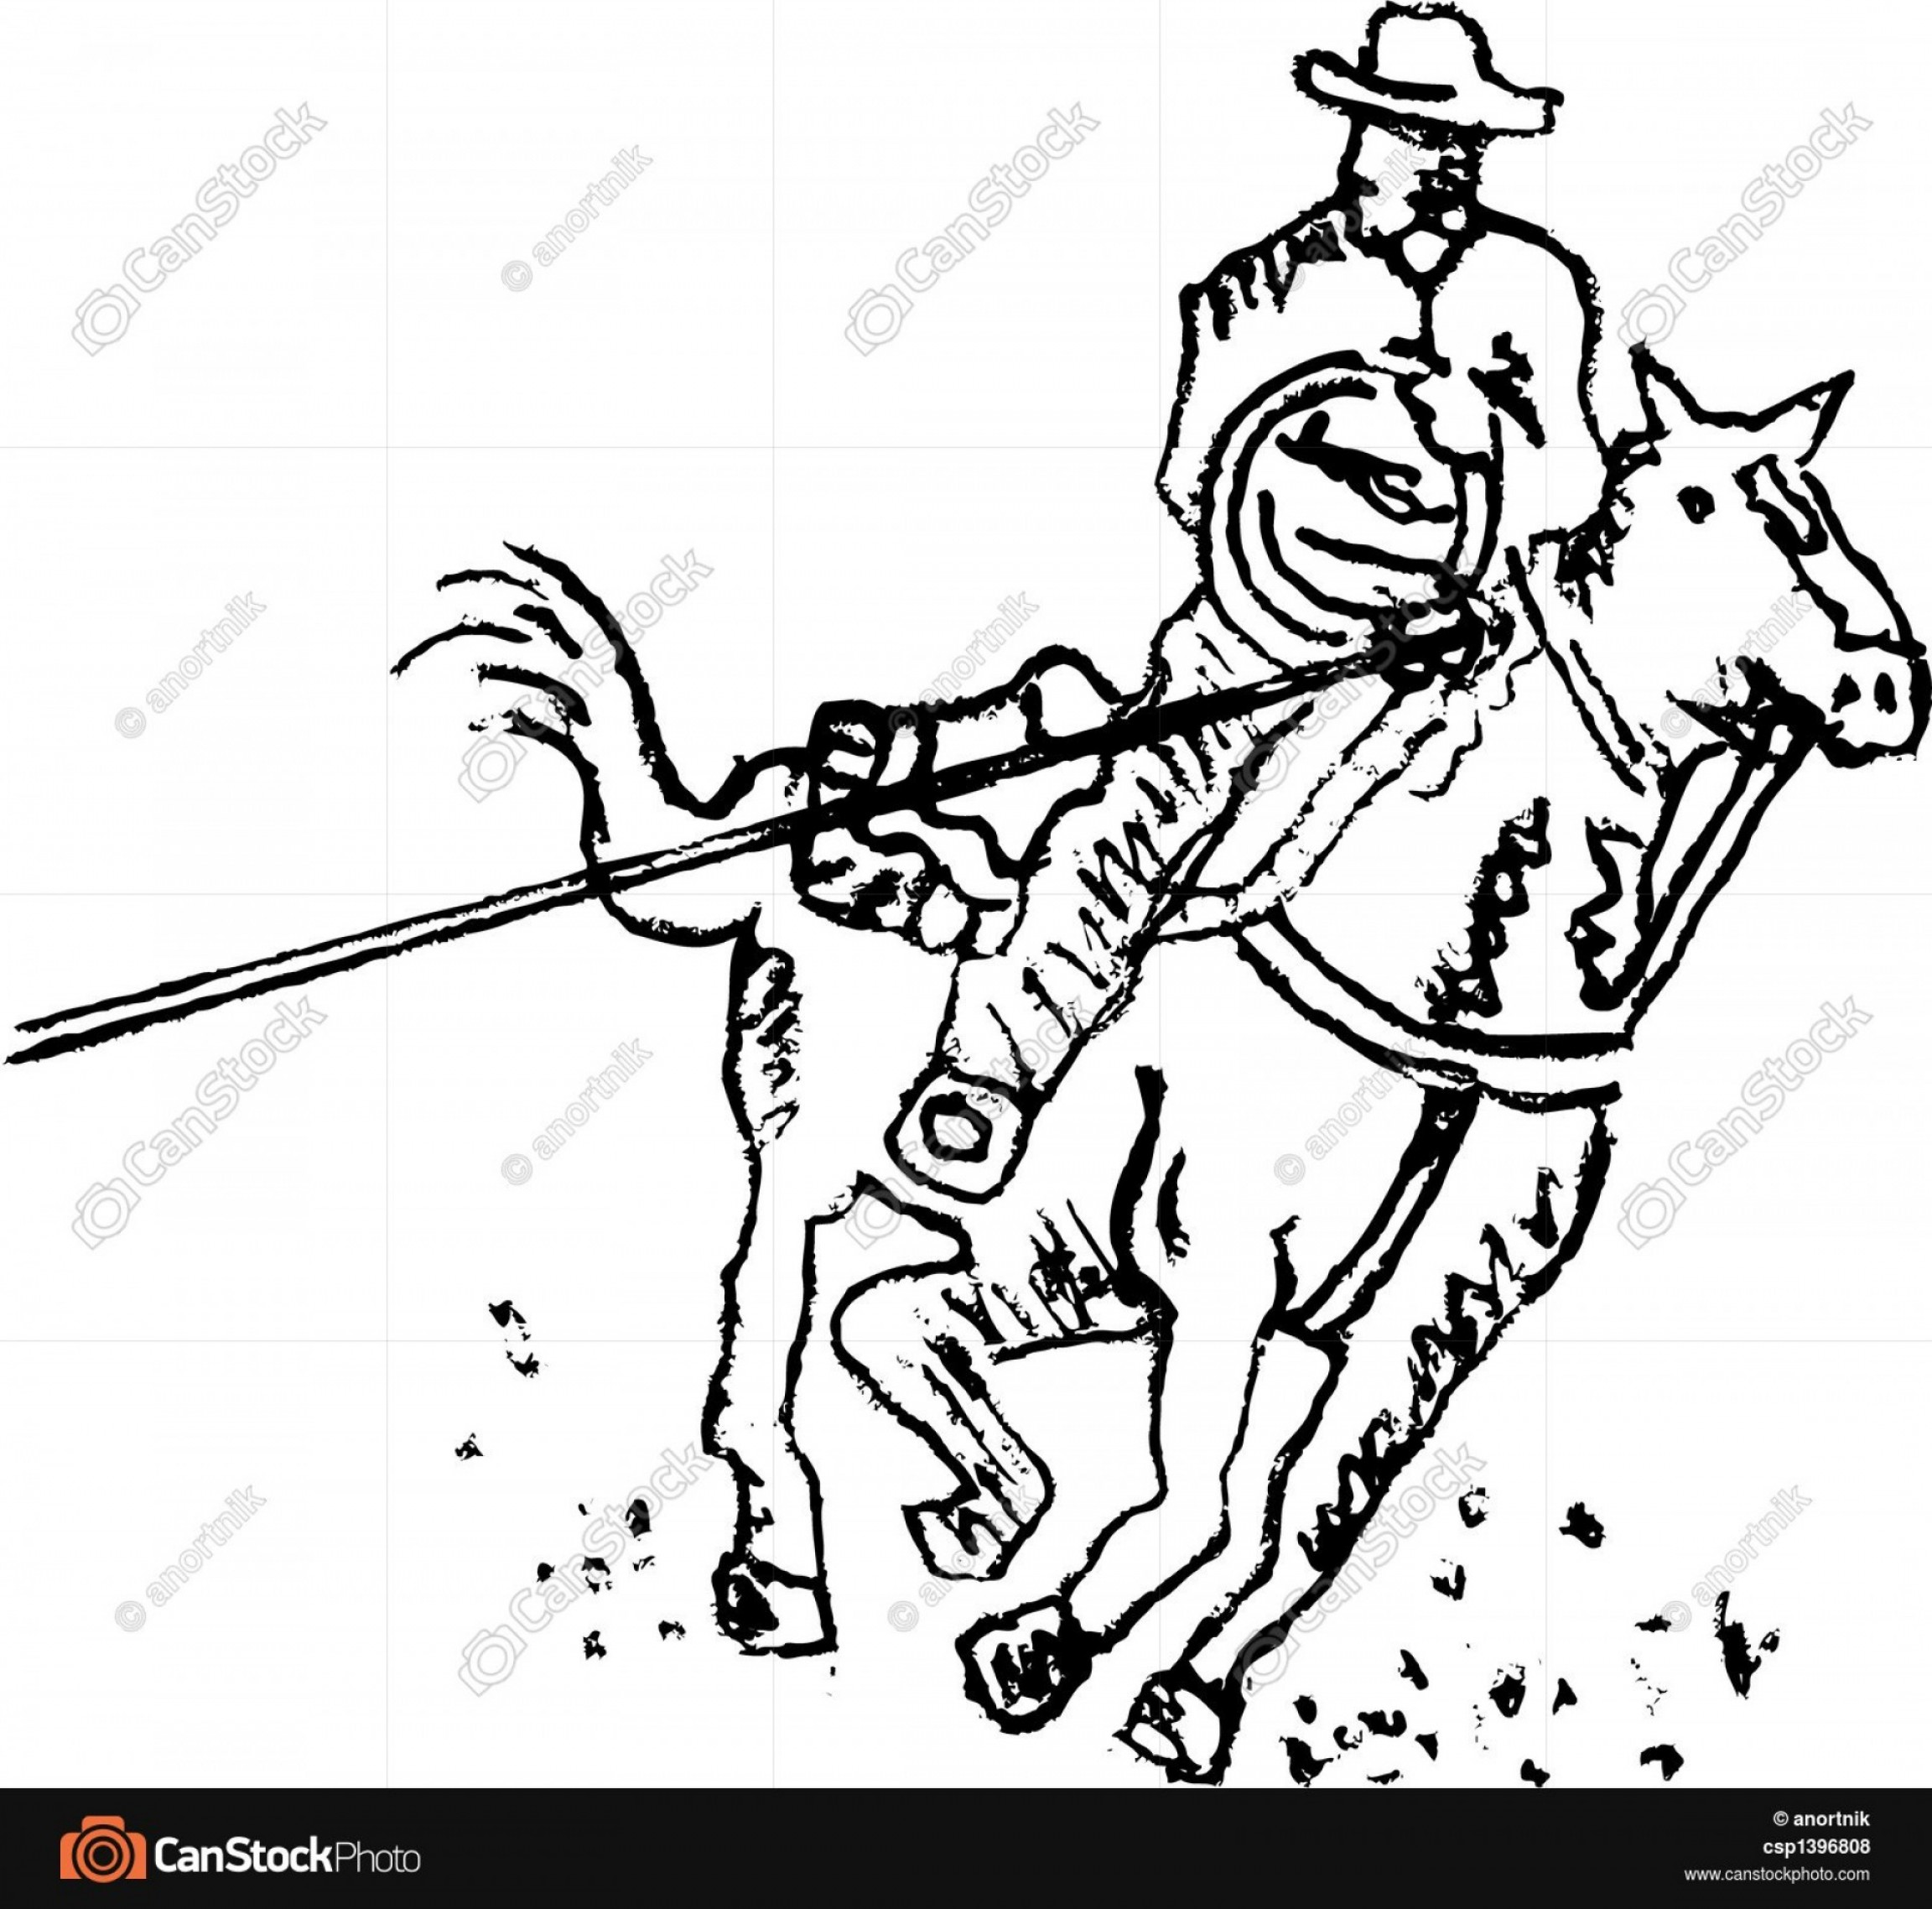 Praying Cowboy Vector: Rodeo Rider Western Cowboy Line Art